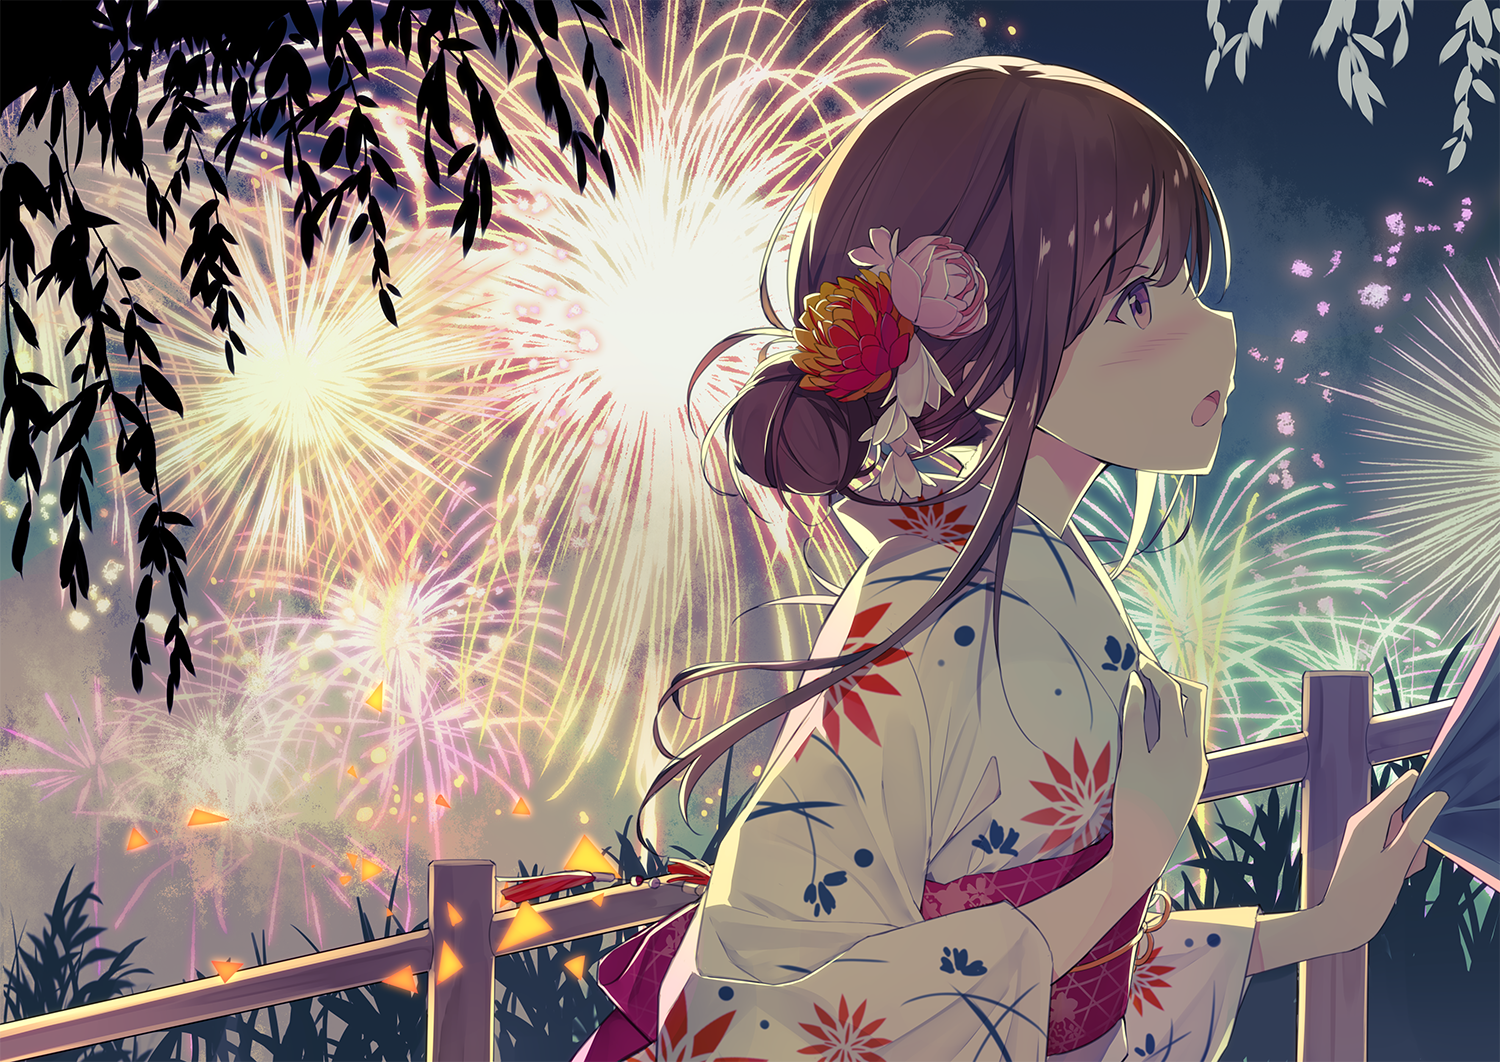 和服 girl in the fireworks night